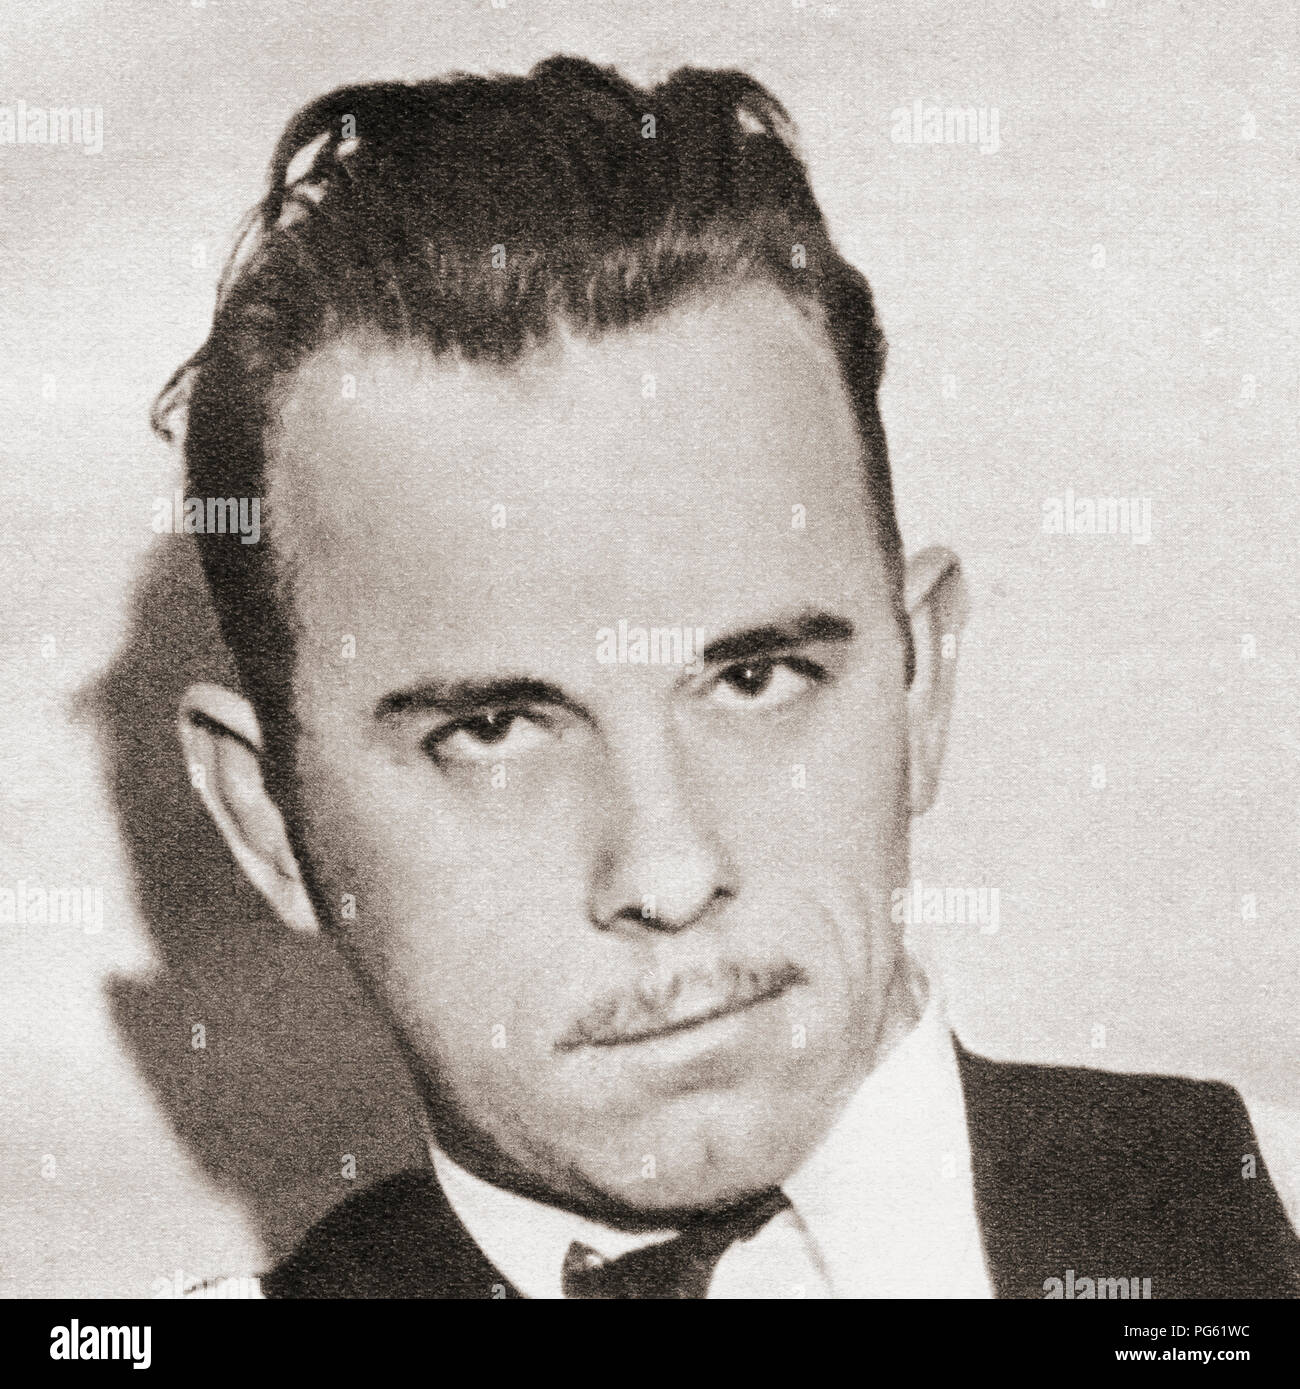 John Herbert Dillinger, 1903 – 1934.   American gangster in the Depression-era of the United States of America.  From These Tremendous Years, published 1938. - Stock Image